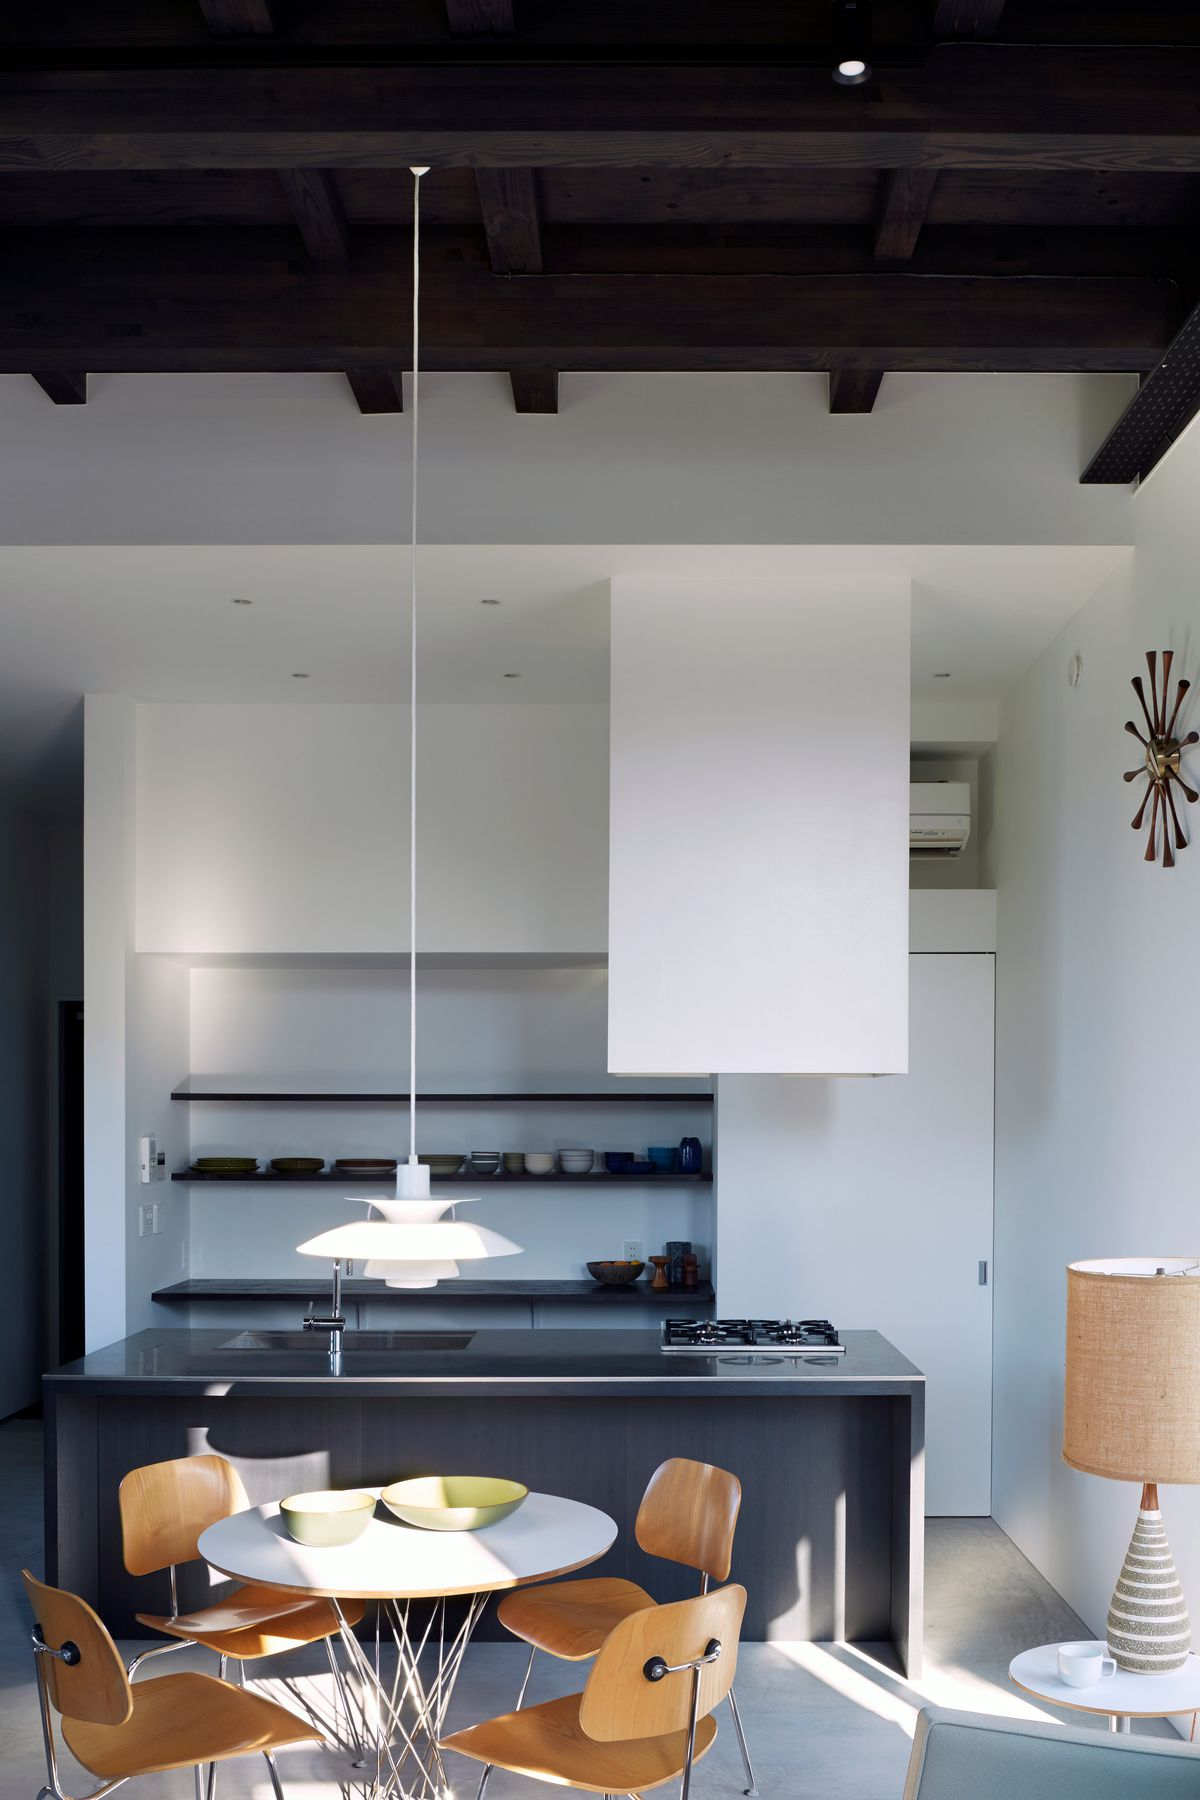 Tokyo Modern Home Is Bunker On The Outside Airy Loft On